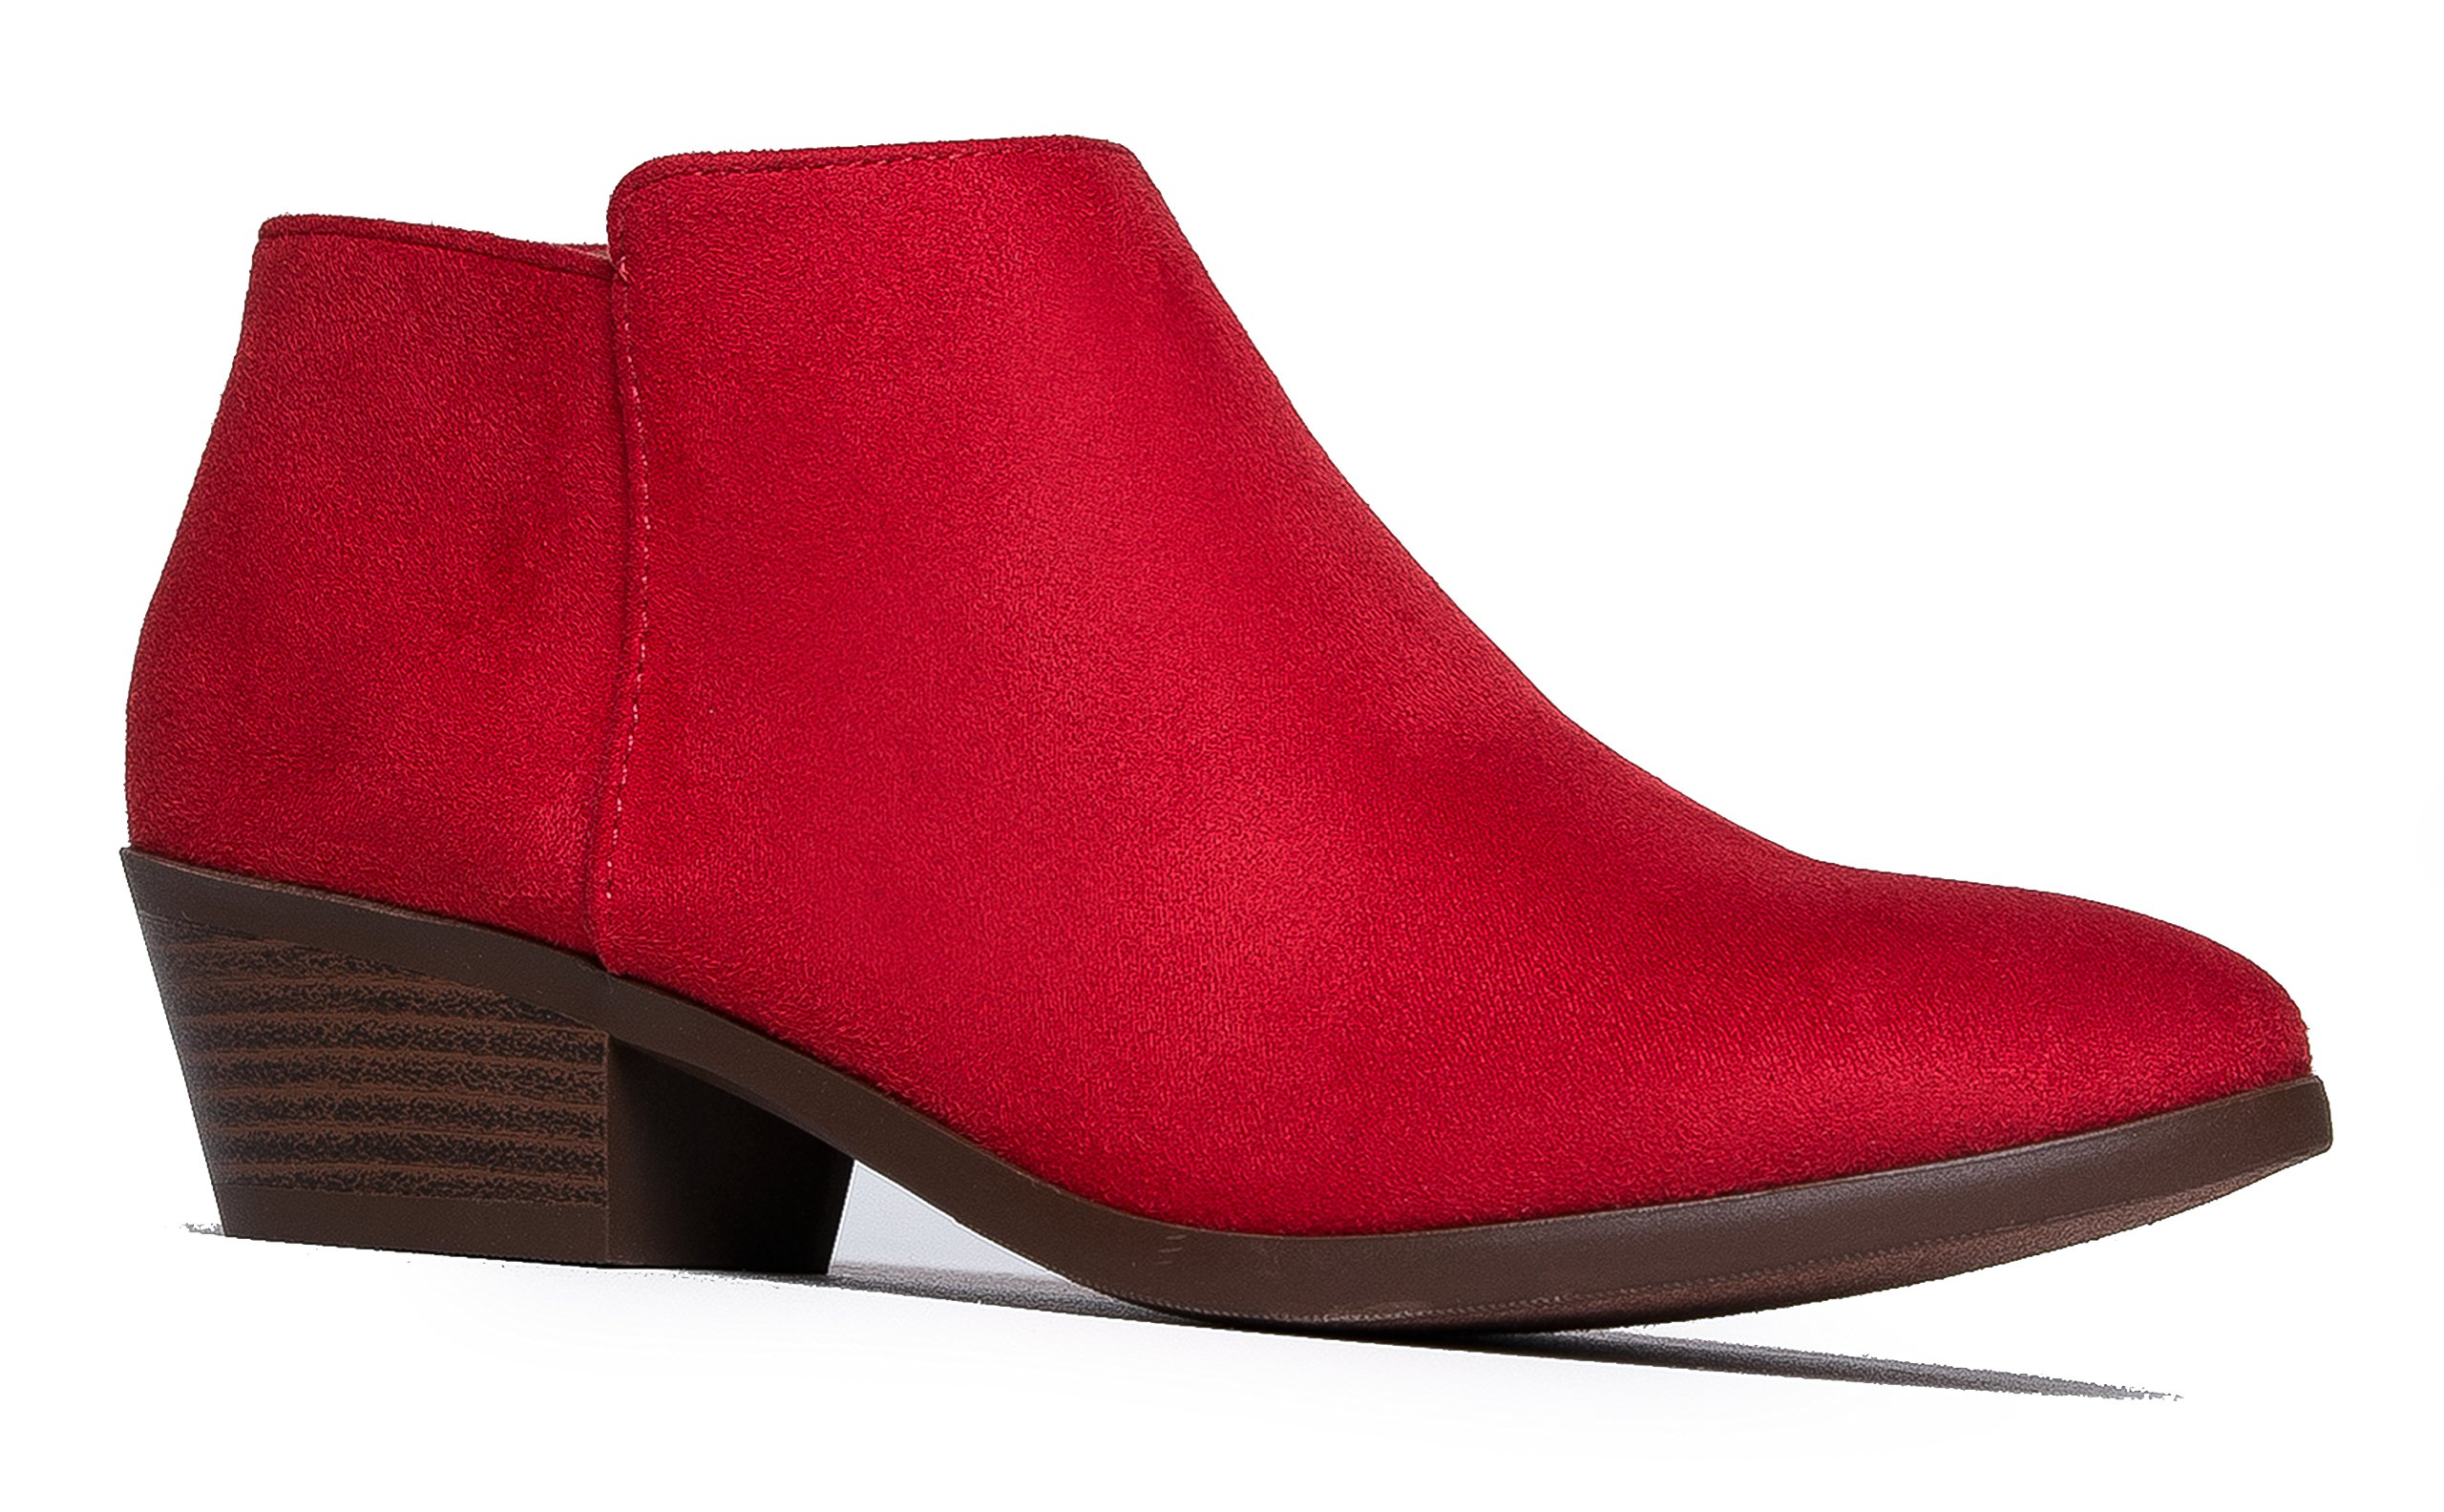 Western Ankle Boot - Cowgirl Low Heel Closed Toe Casual Bootie - Comfortable Walking Slip On, Red, 9